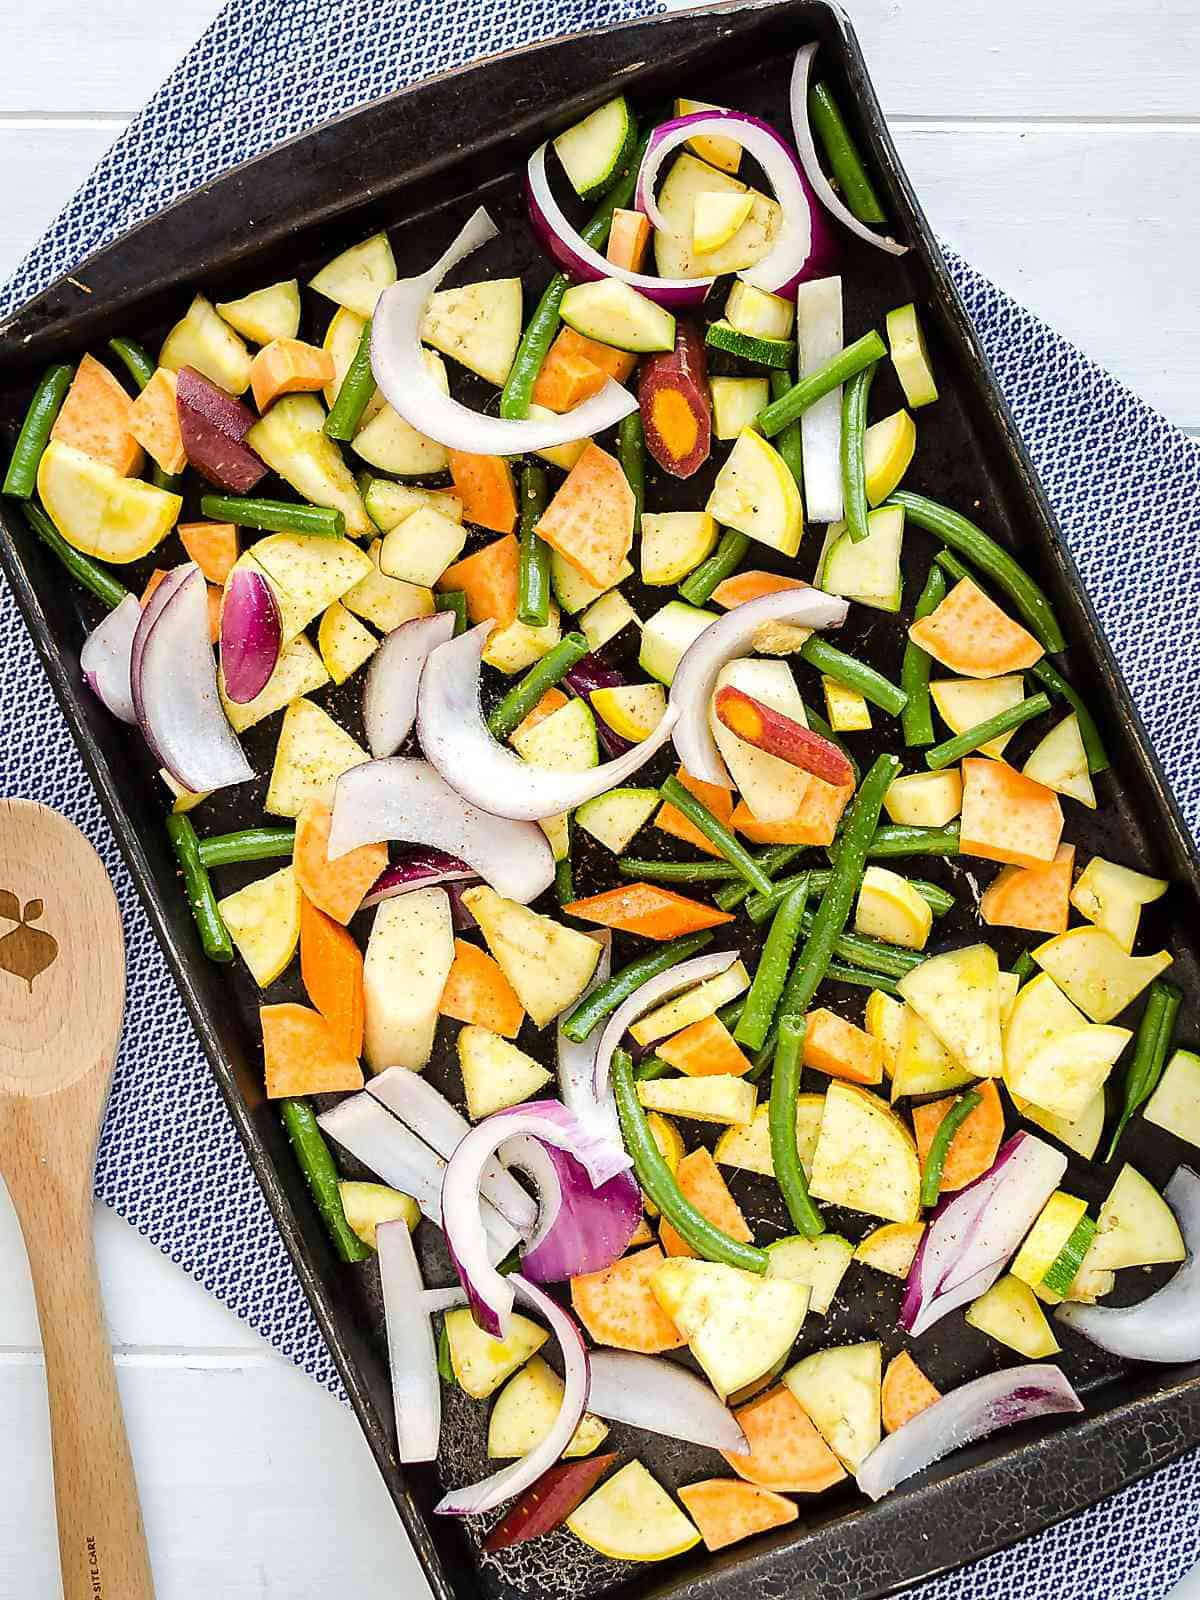 sheet pan full of cut up raw colorful vegetables with a wooden spoon on the side